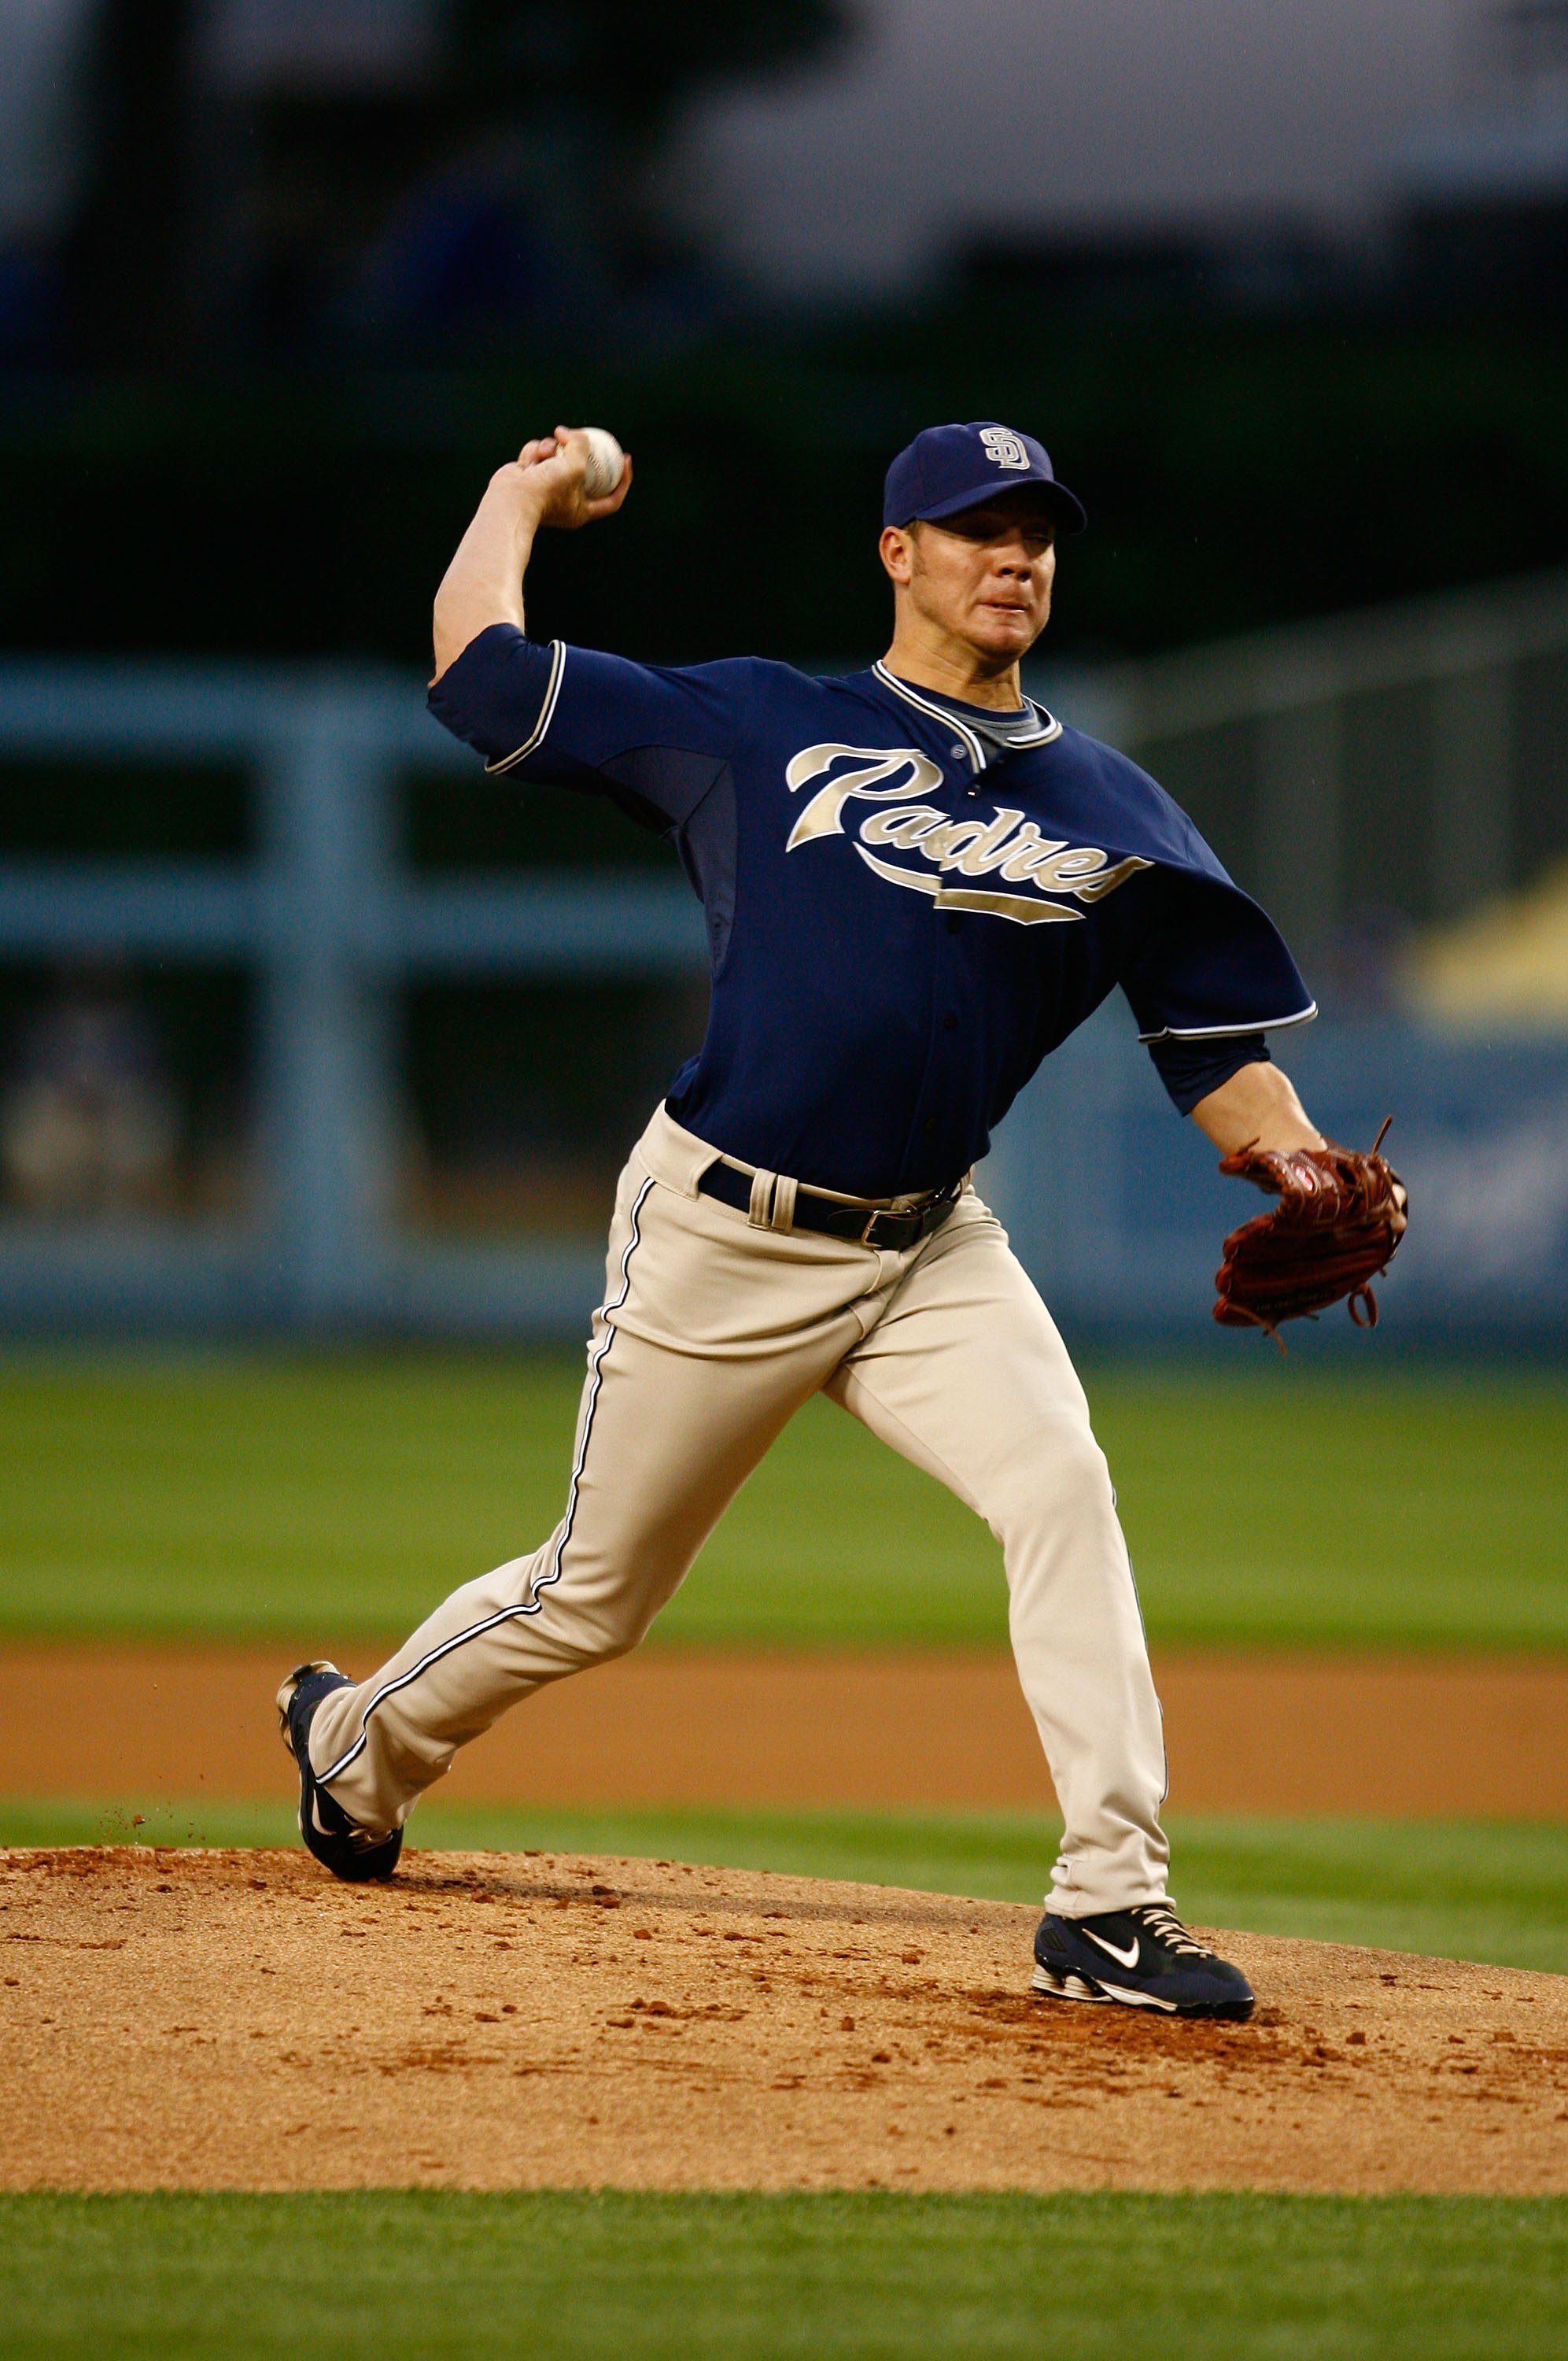 LOS ANGELES, CA - MAY 01:  Jake Peavy #44 of the San Diego Padres throws a pitch against the Los Angeles Dodgers at Dodger Stadium on May 1, 2009 in Los Angeles, California. The Dodgers defeated the Padres 1-0.  (Photo by Jeff Gross/Getty Images)